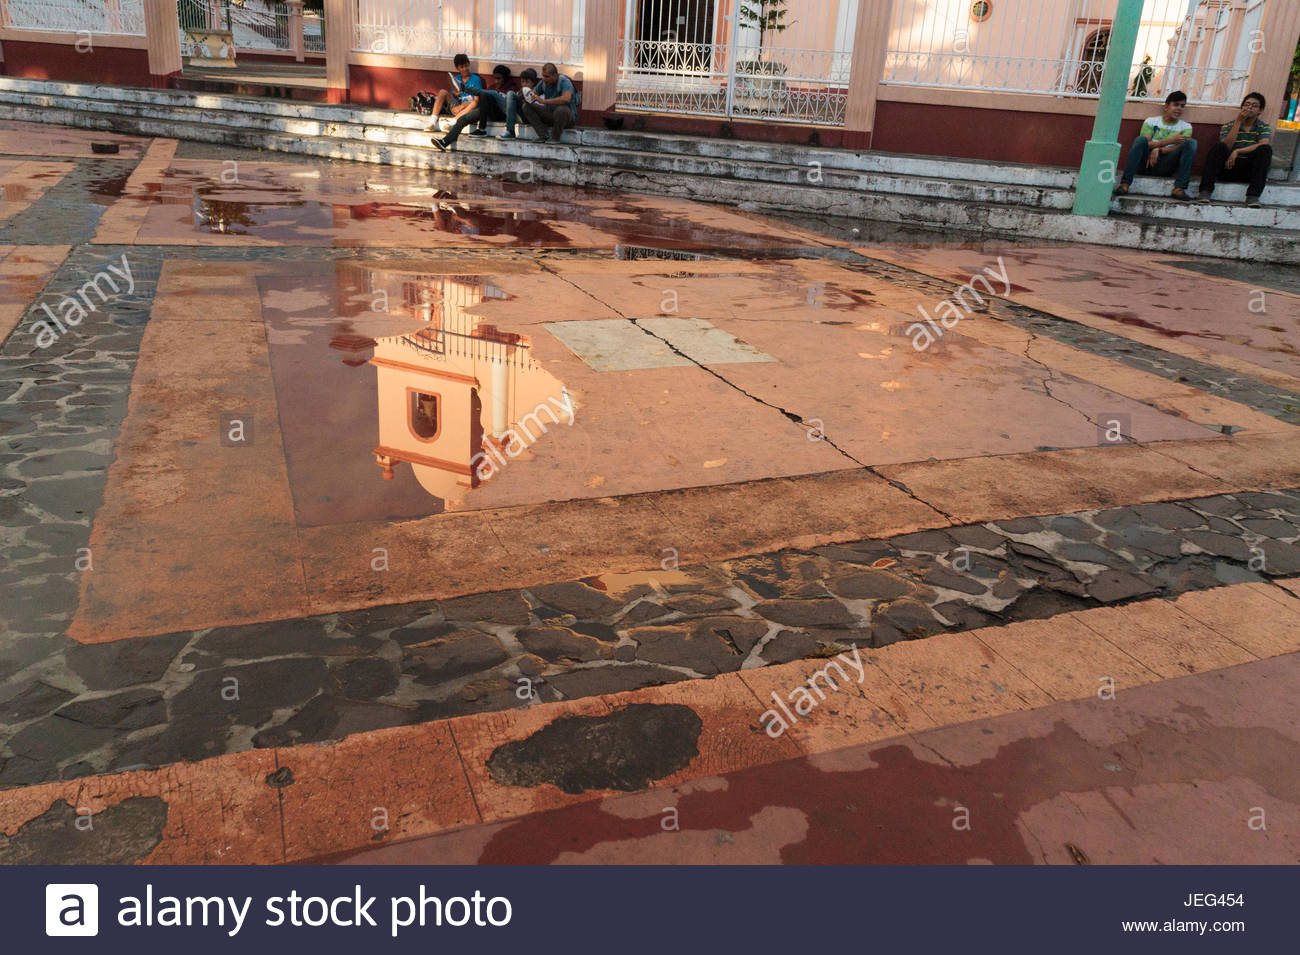 church-reflected-in-rain-puddles-on-the-church-plaza-boaco-nicaragua-JEG454.jpg